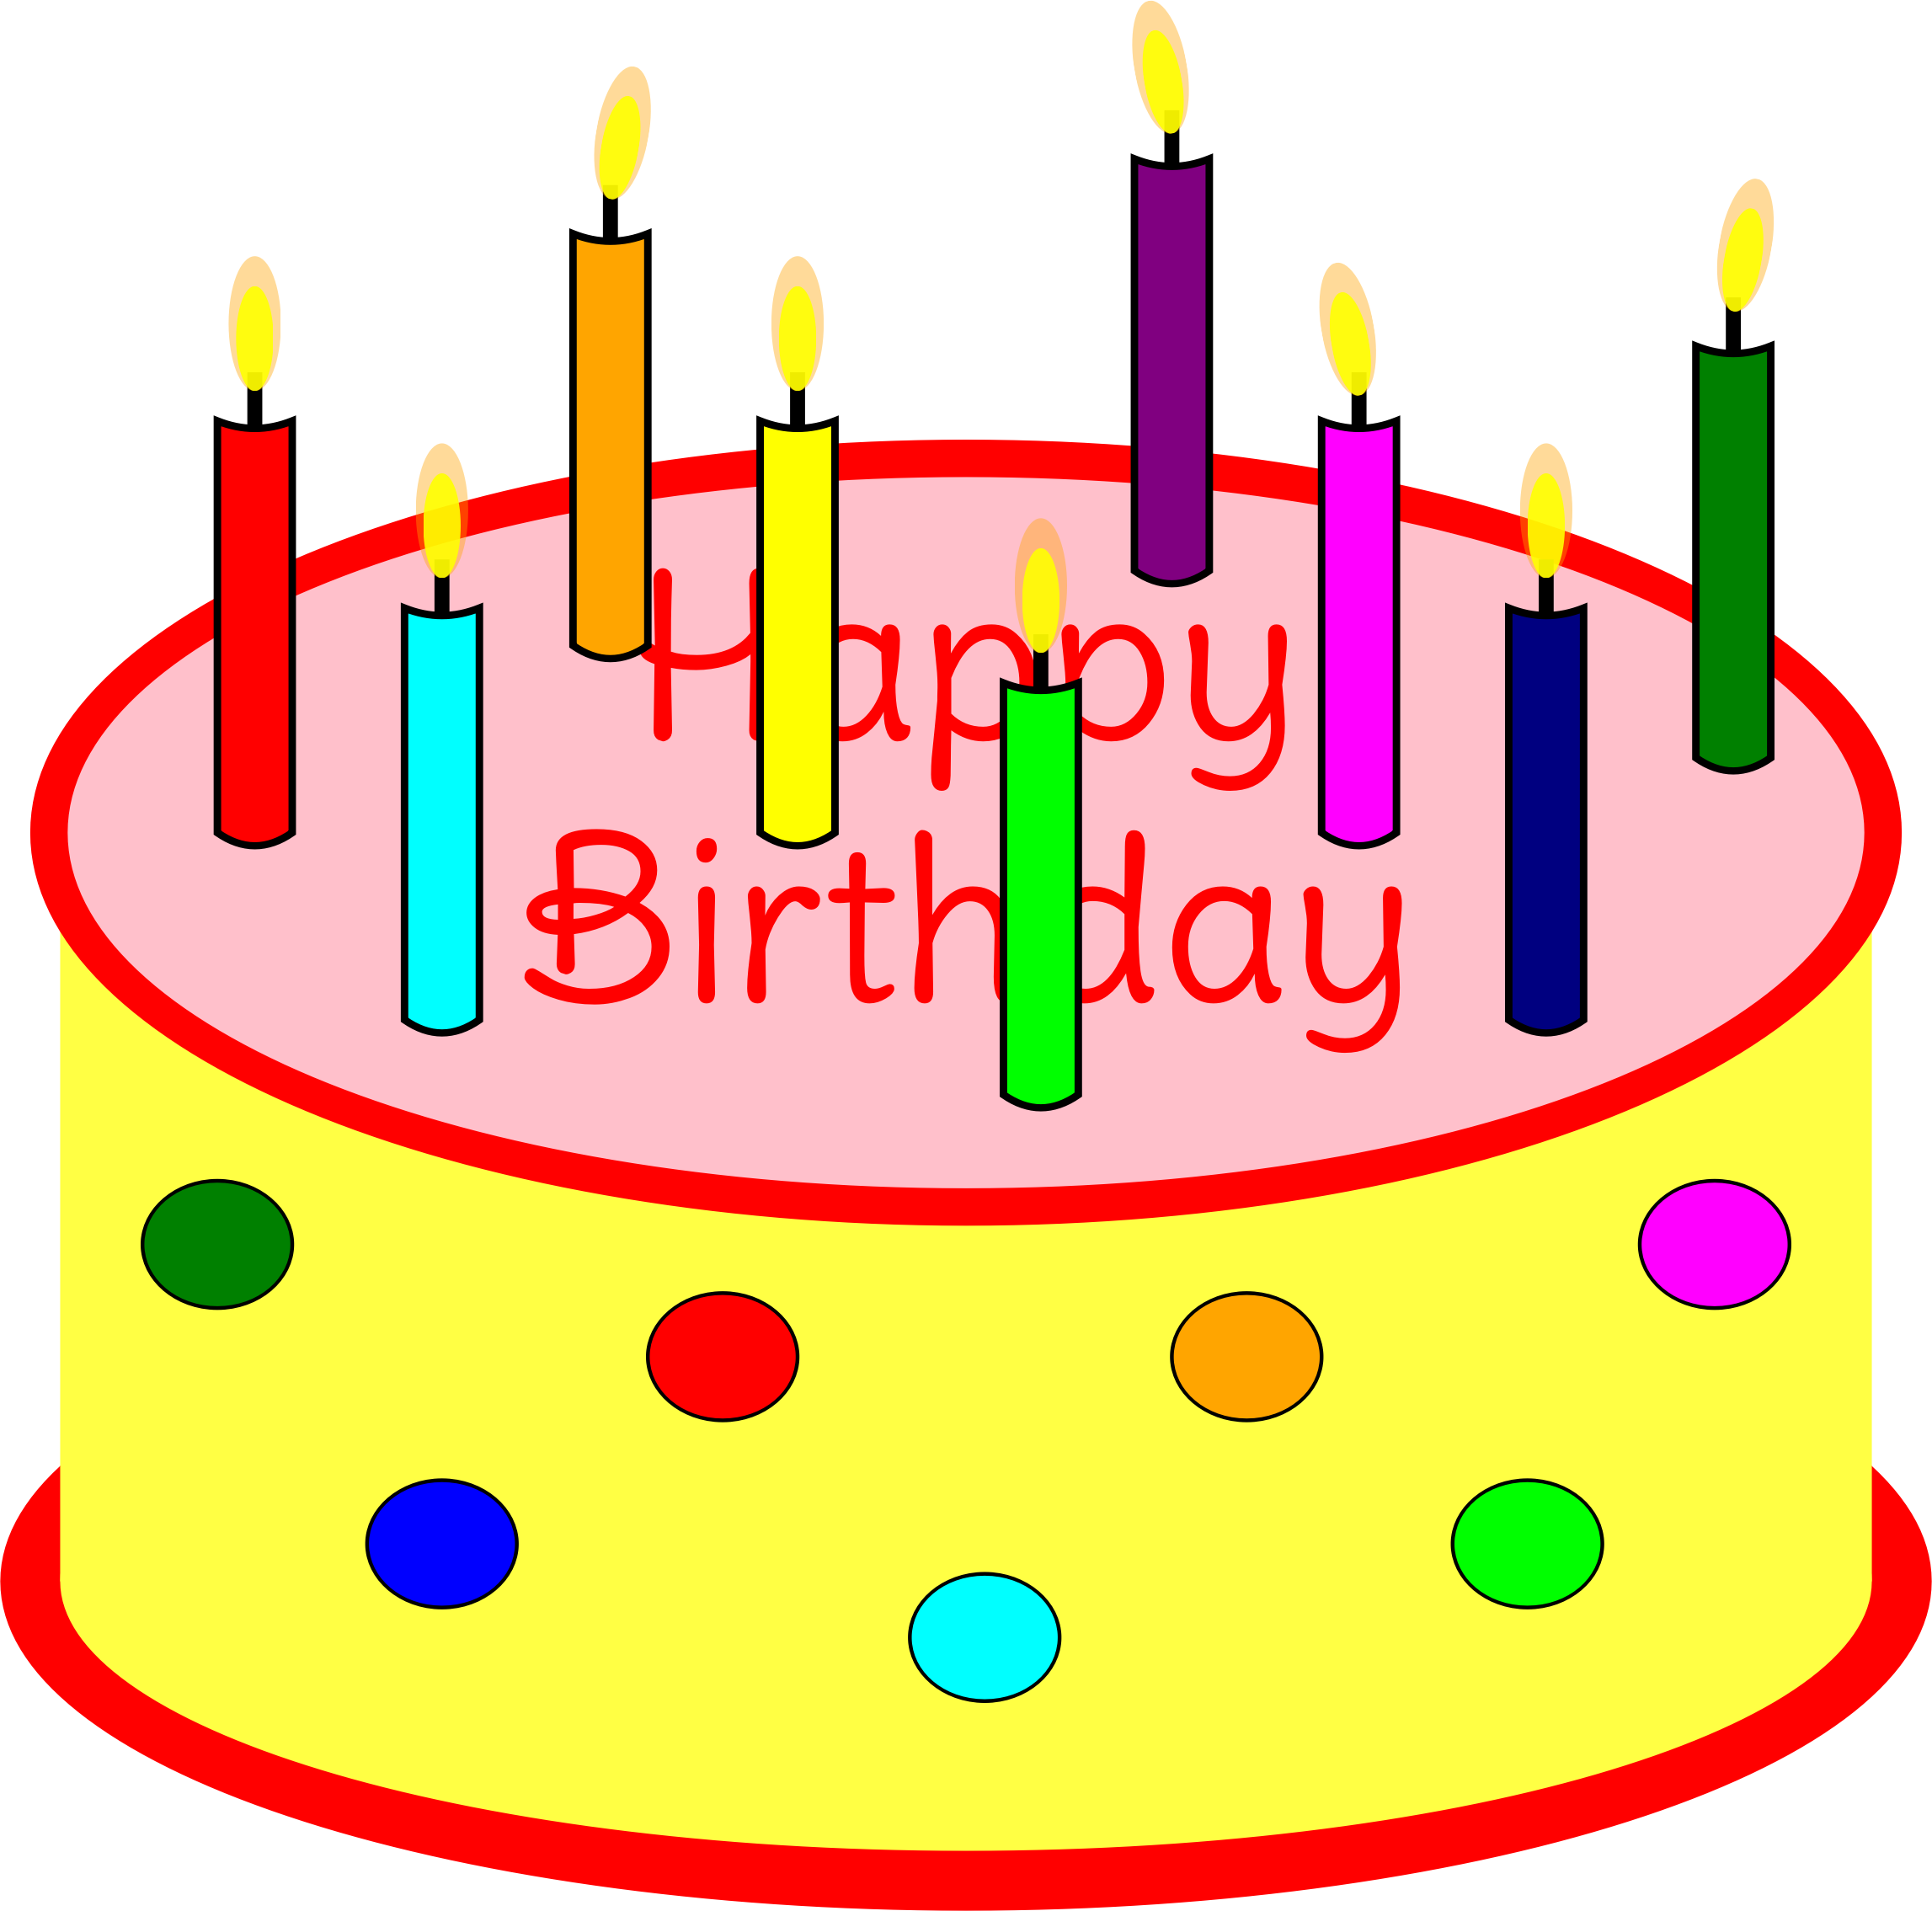 Birthday cake clipart animated 4 » Clipart Station.